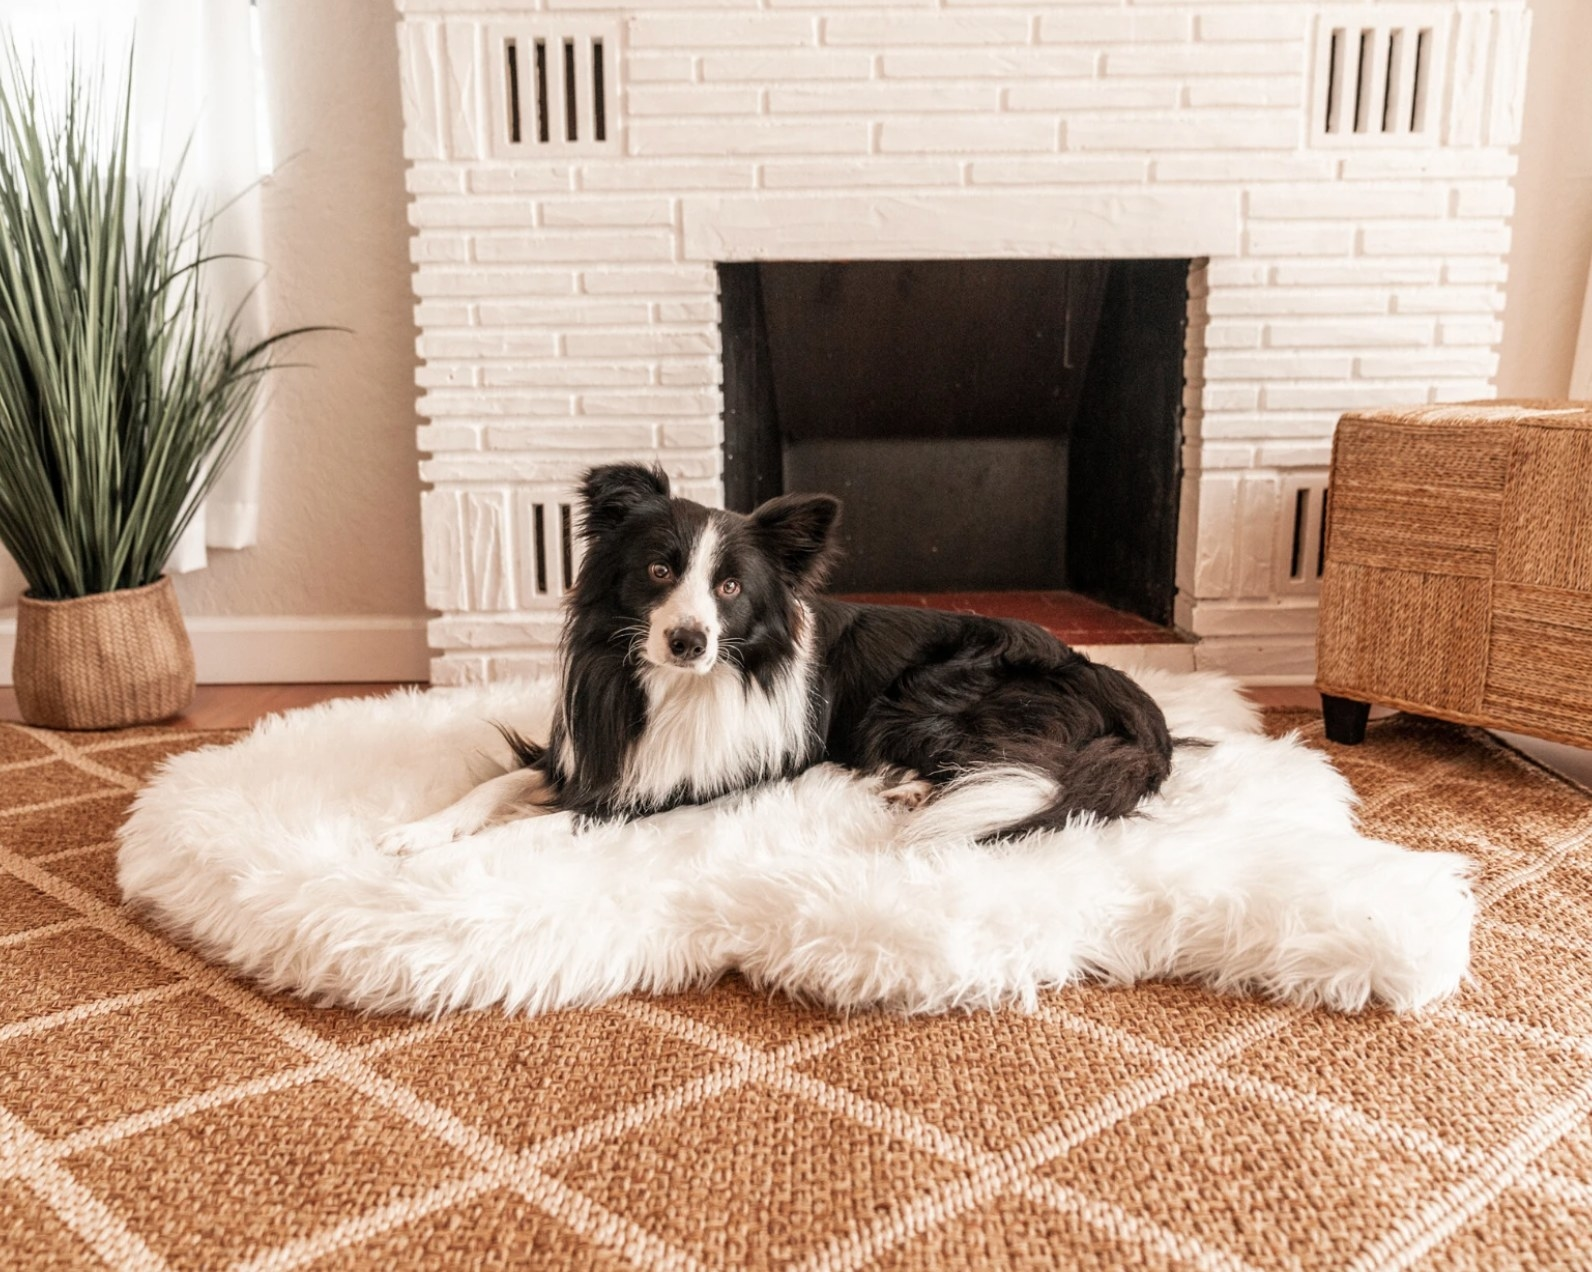 The faux fur dog bed